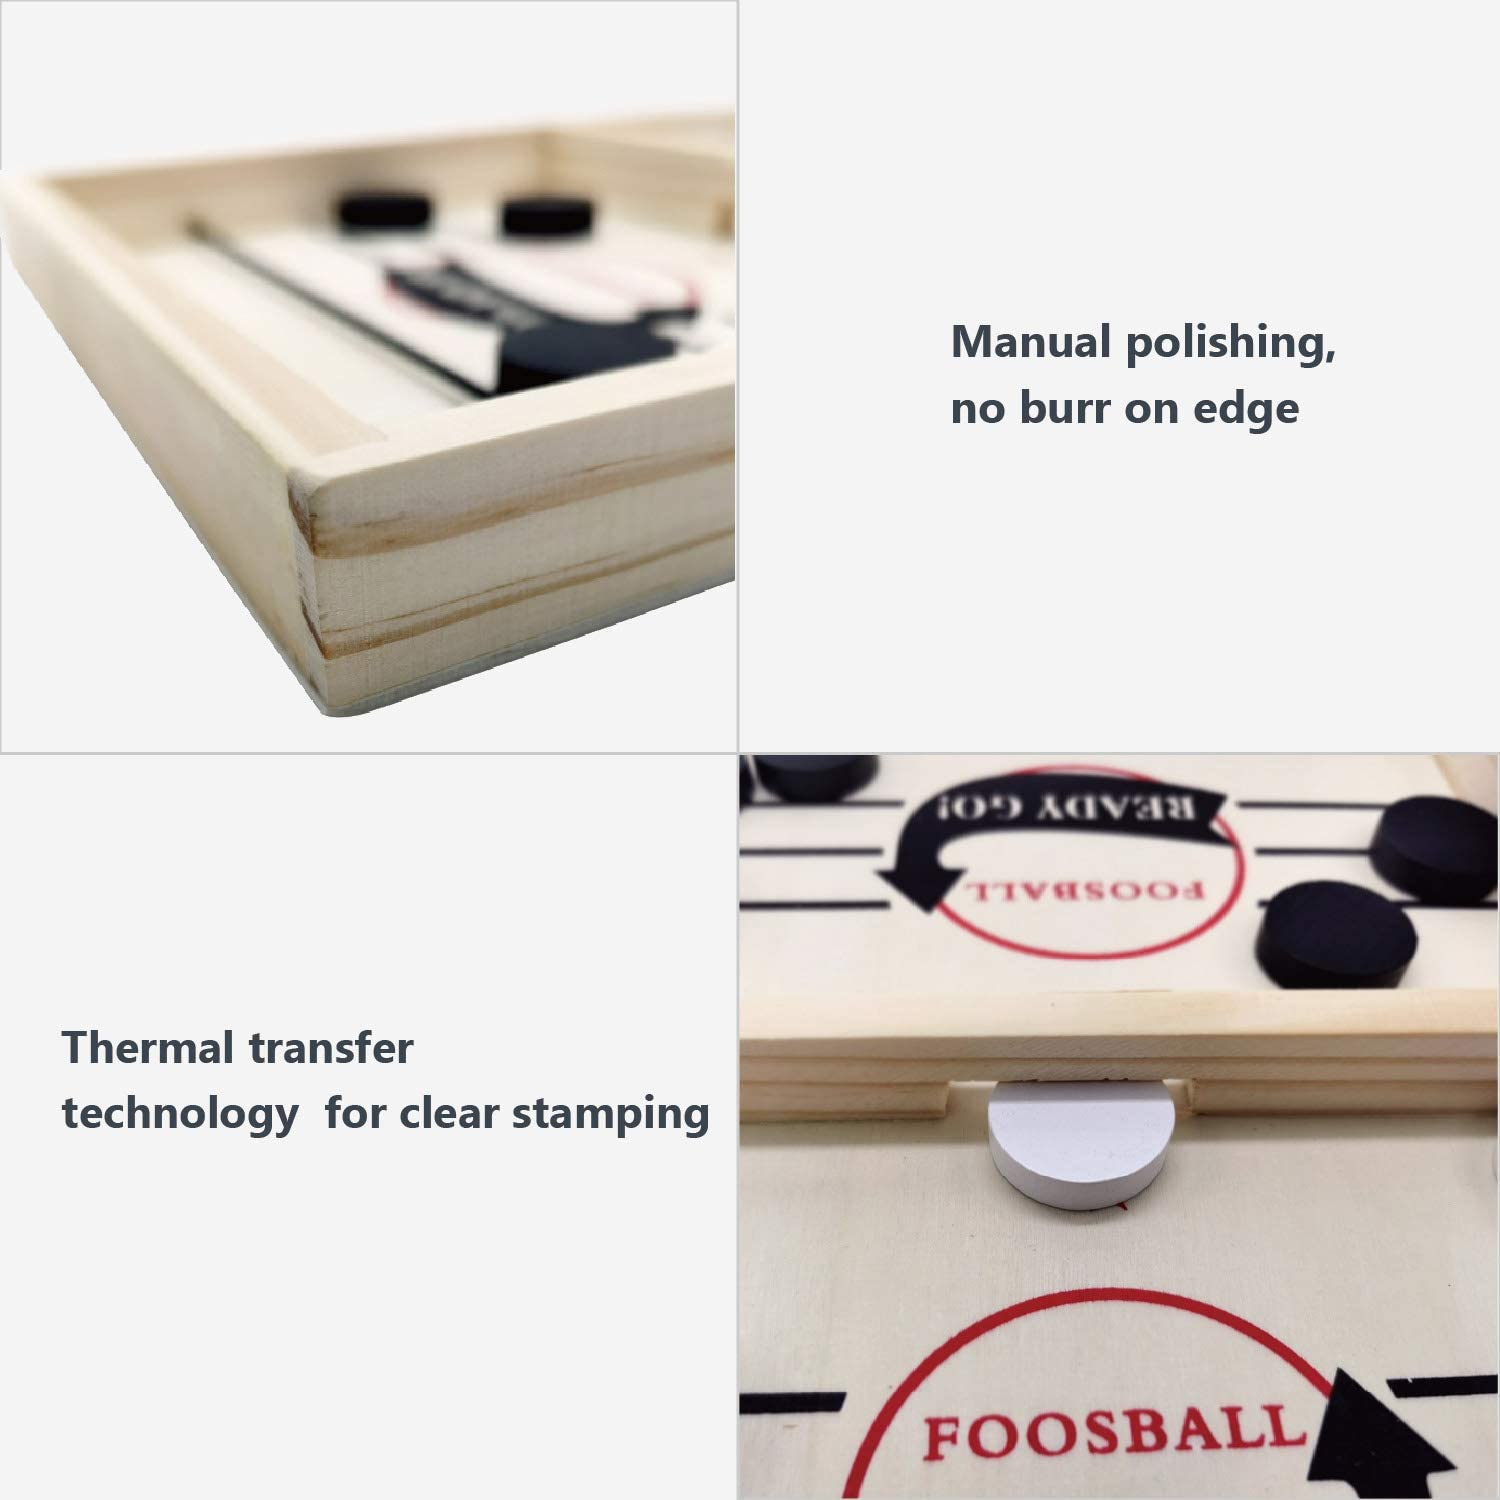 Foosball Slingshot Outdoor Camping Board Games for Family Portable Slingpuck Board Game for Child Toydaze Sling Foosball Fast Sling Puck Game with Extra 10 Pucks /& 2 Slingshots for Spare Use